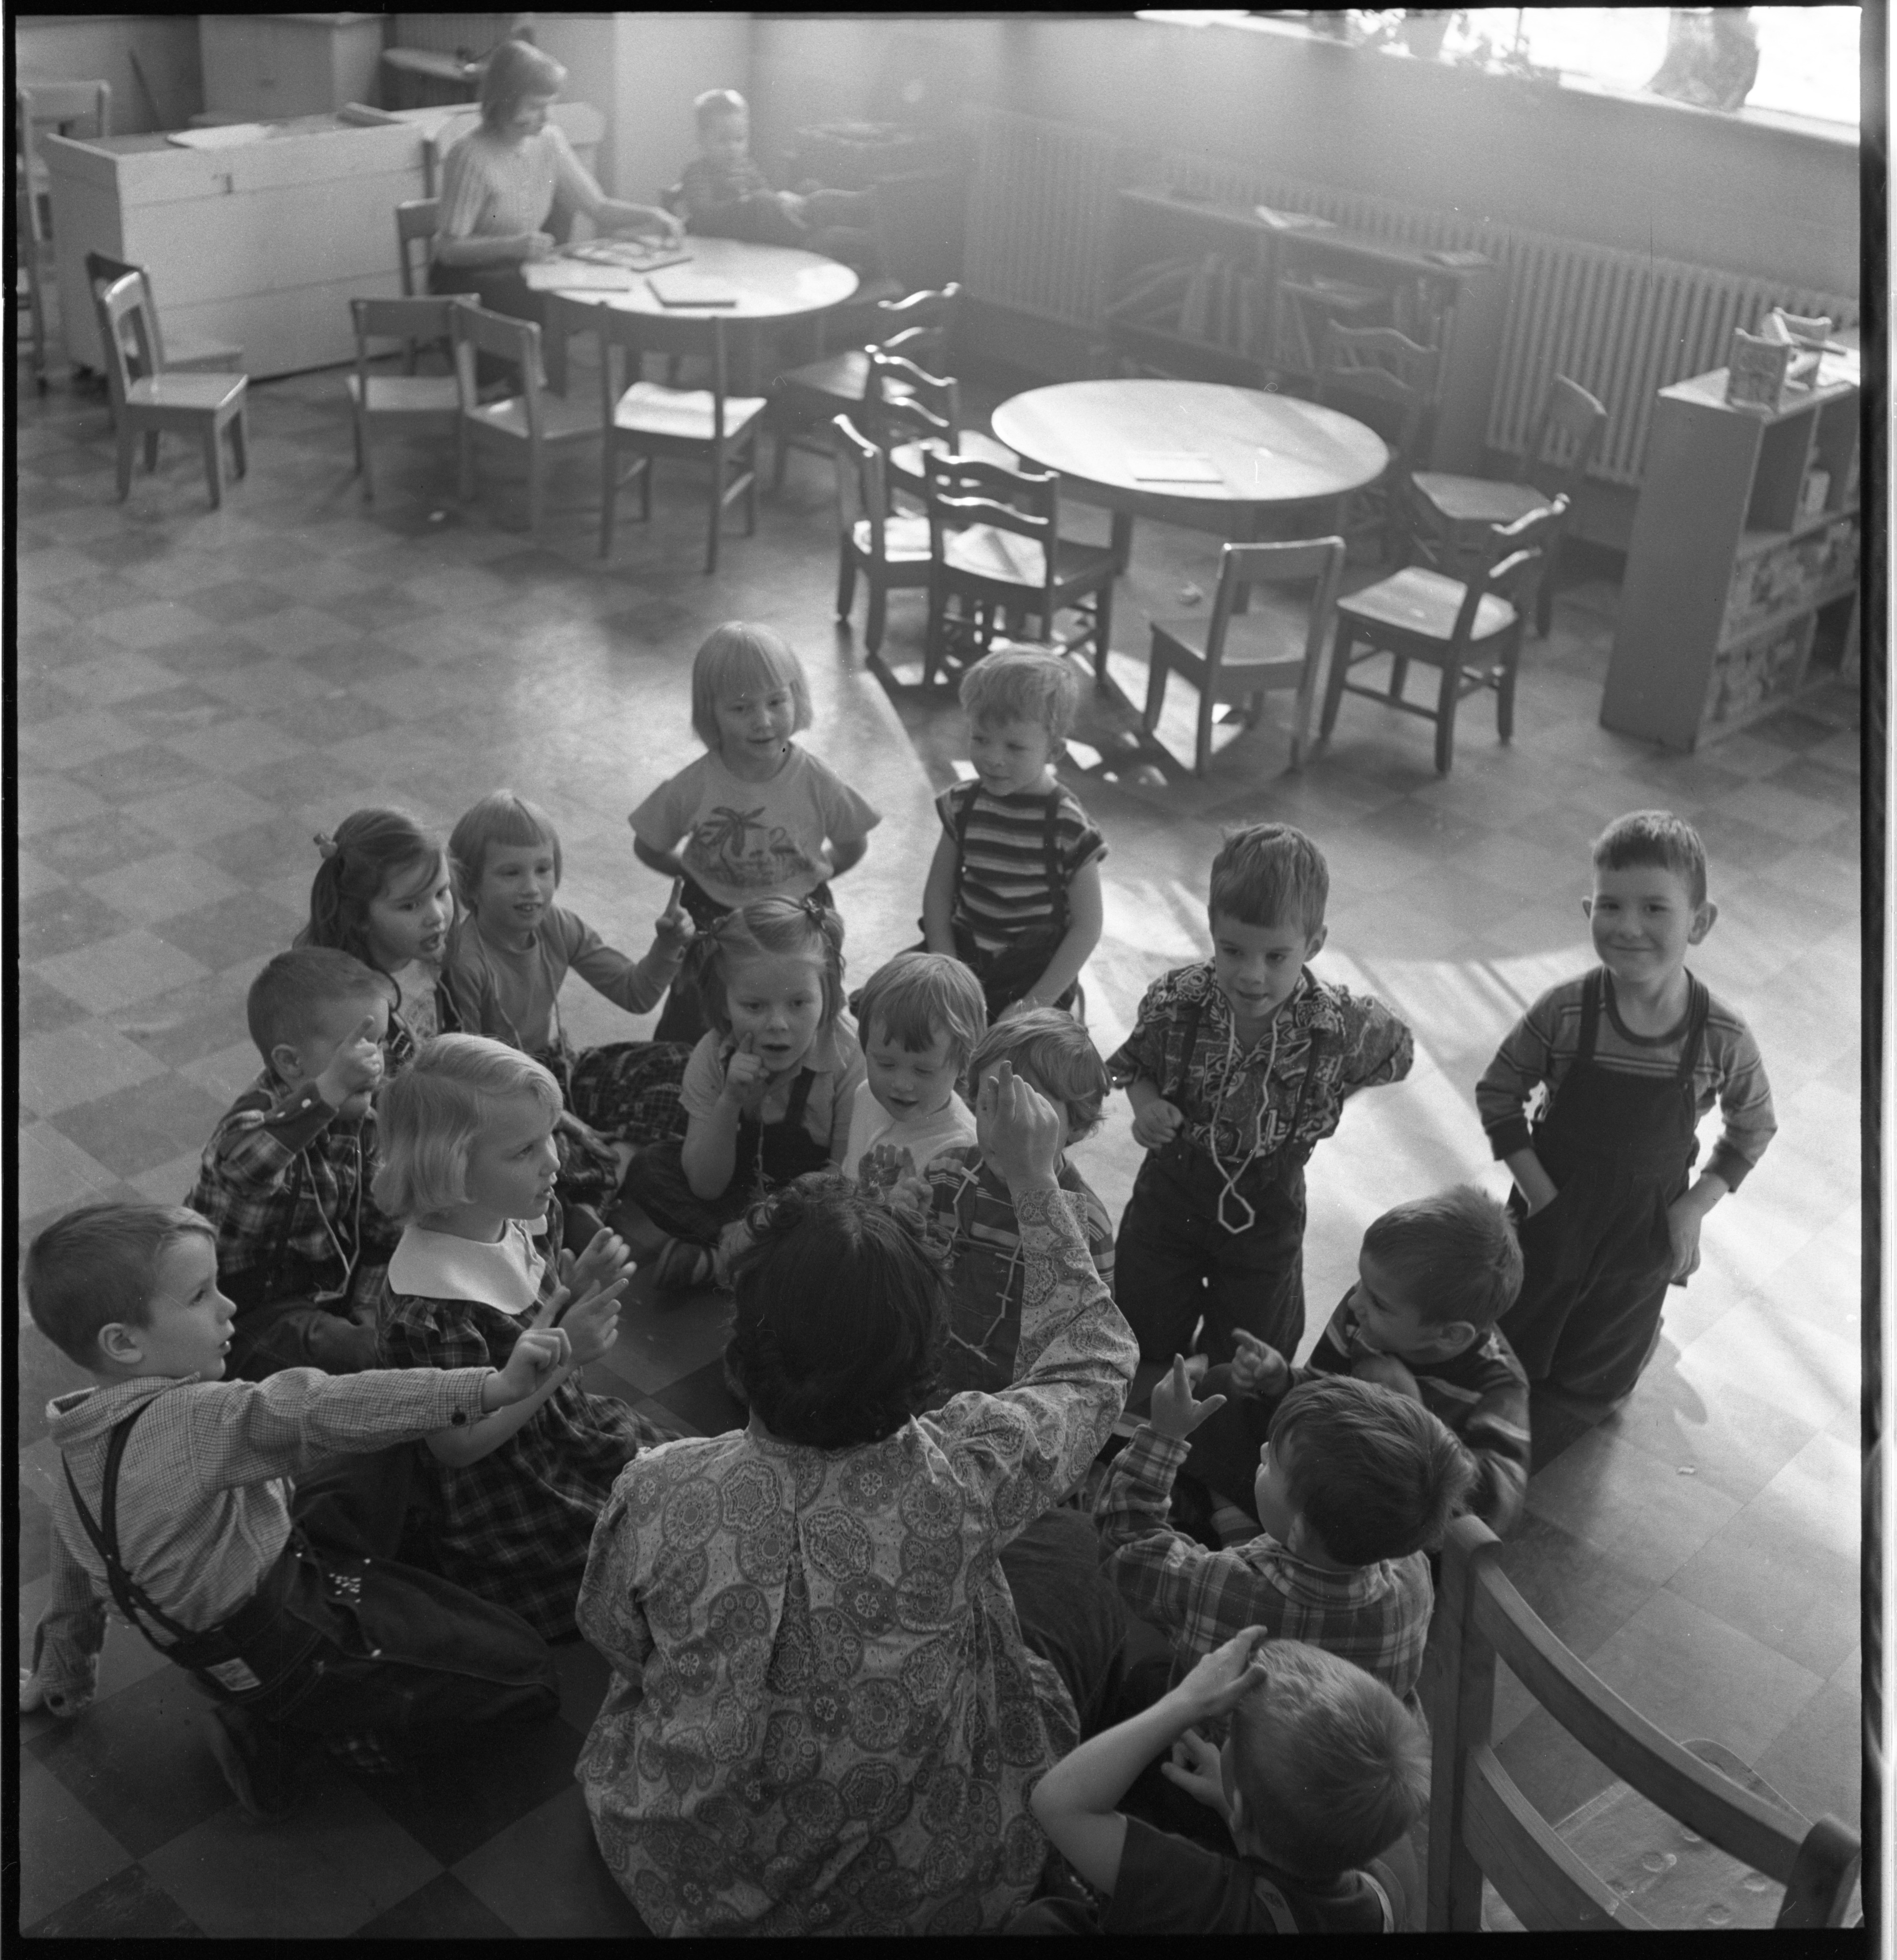 Mrs. Binn Leads A Song At The Ann Arbor Co-Operative Nursery School, January 1955 image